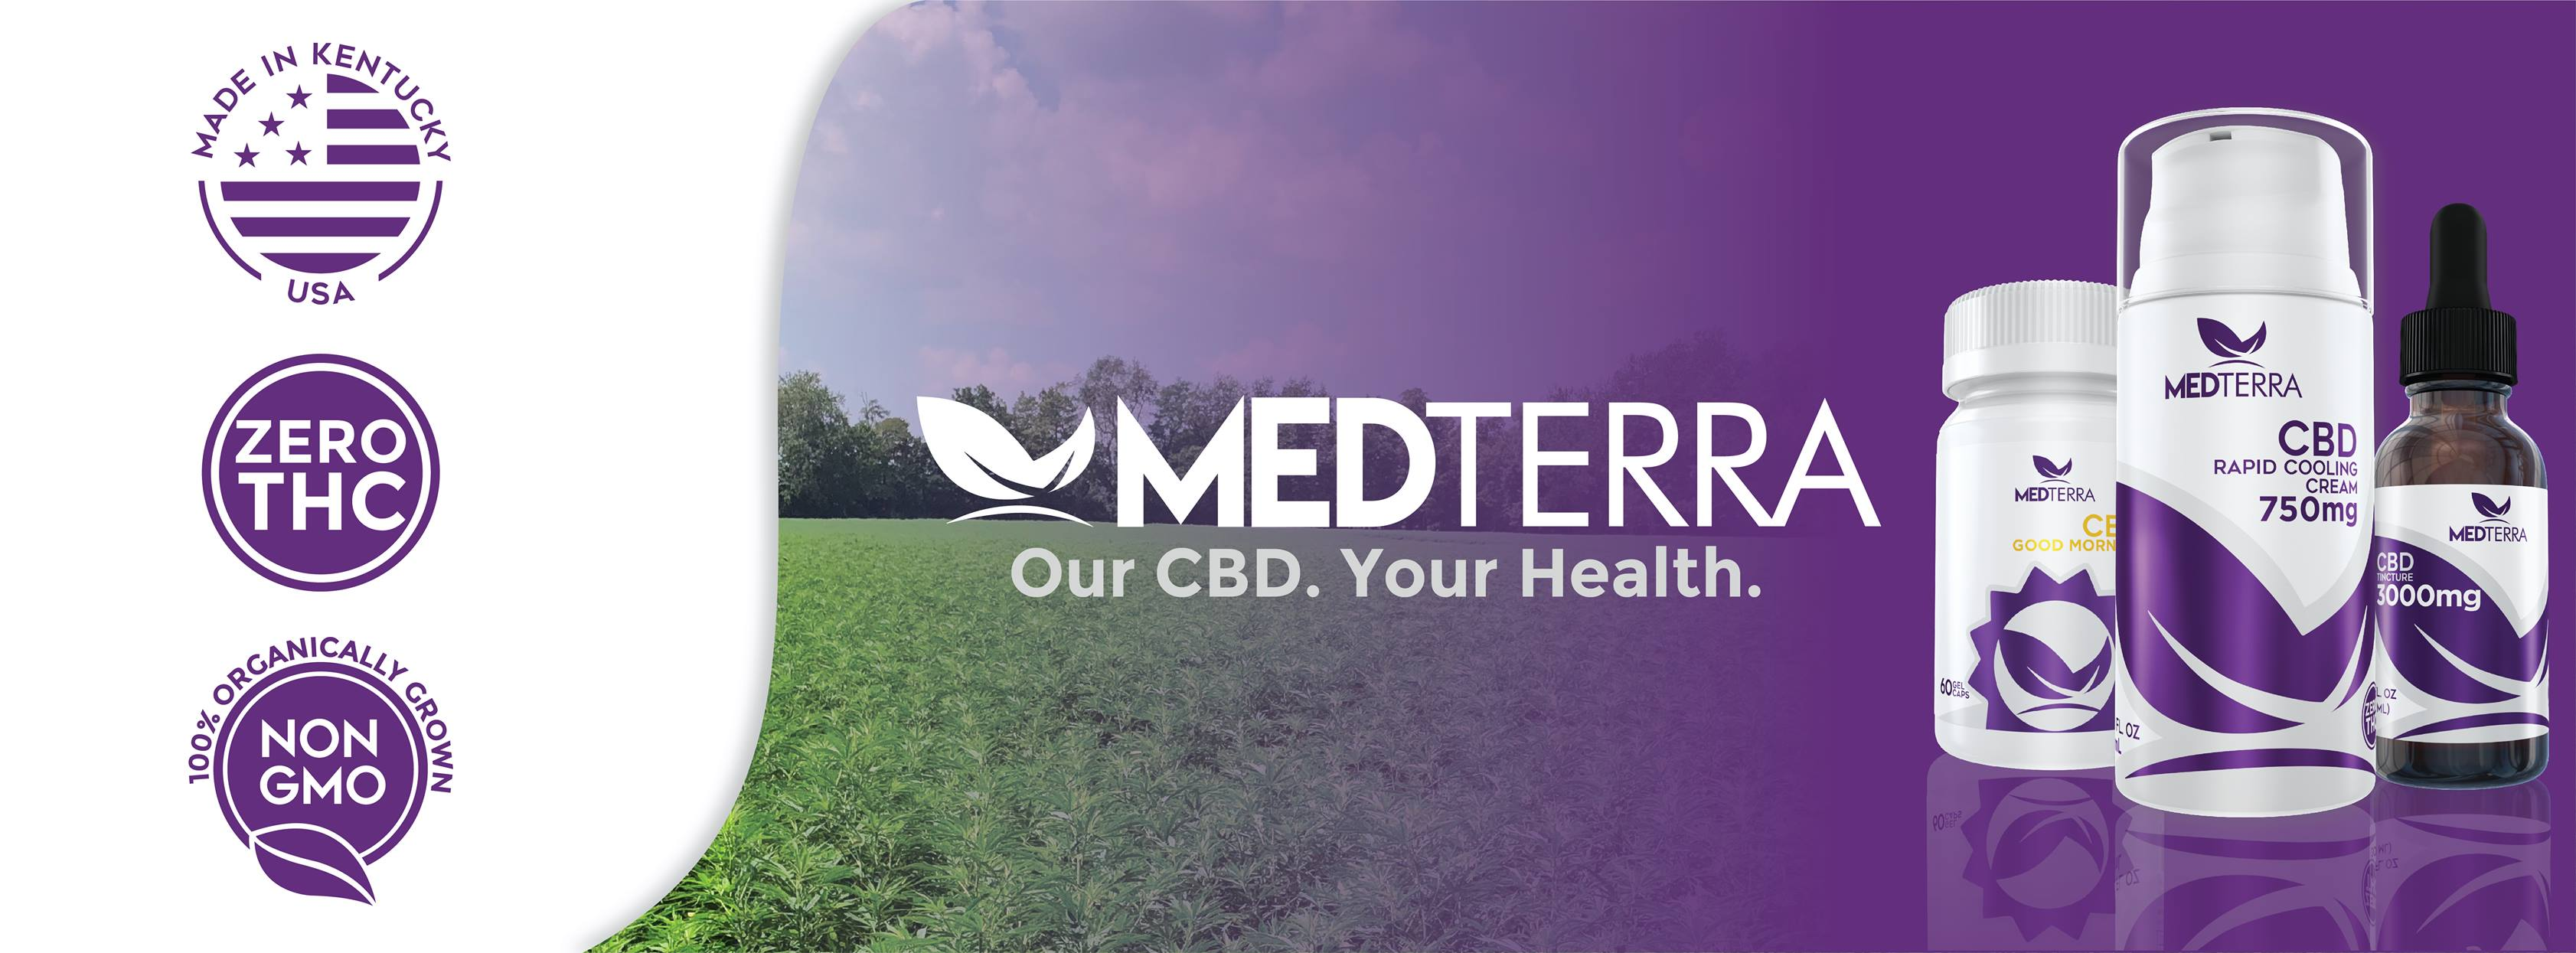 Medterra CBD reviews | 9801 Research Dr - Irvine CA